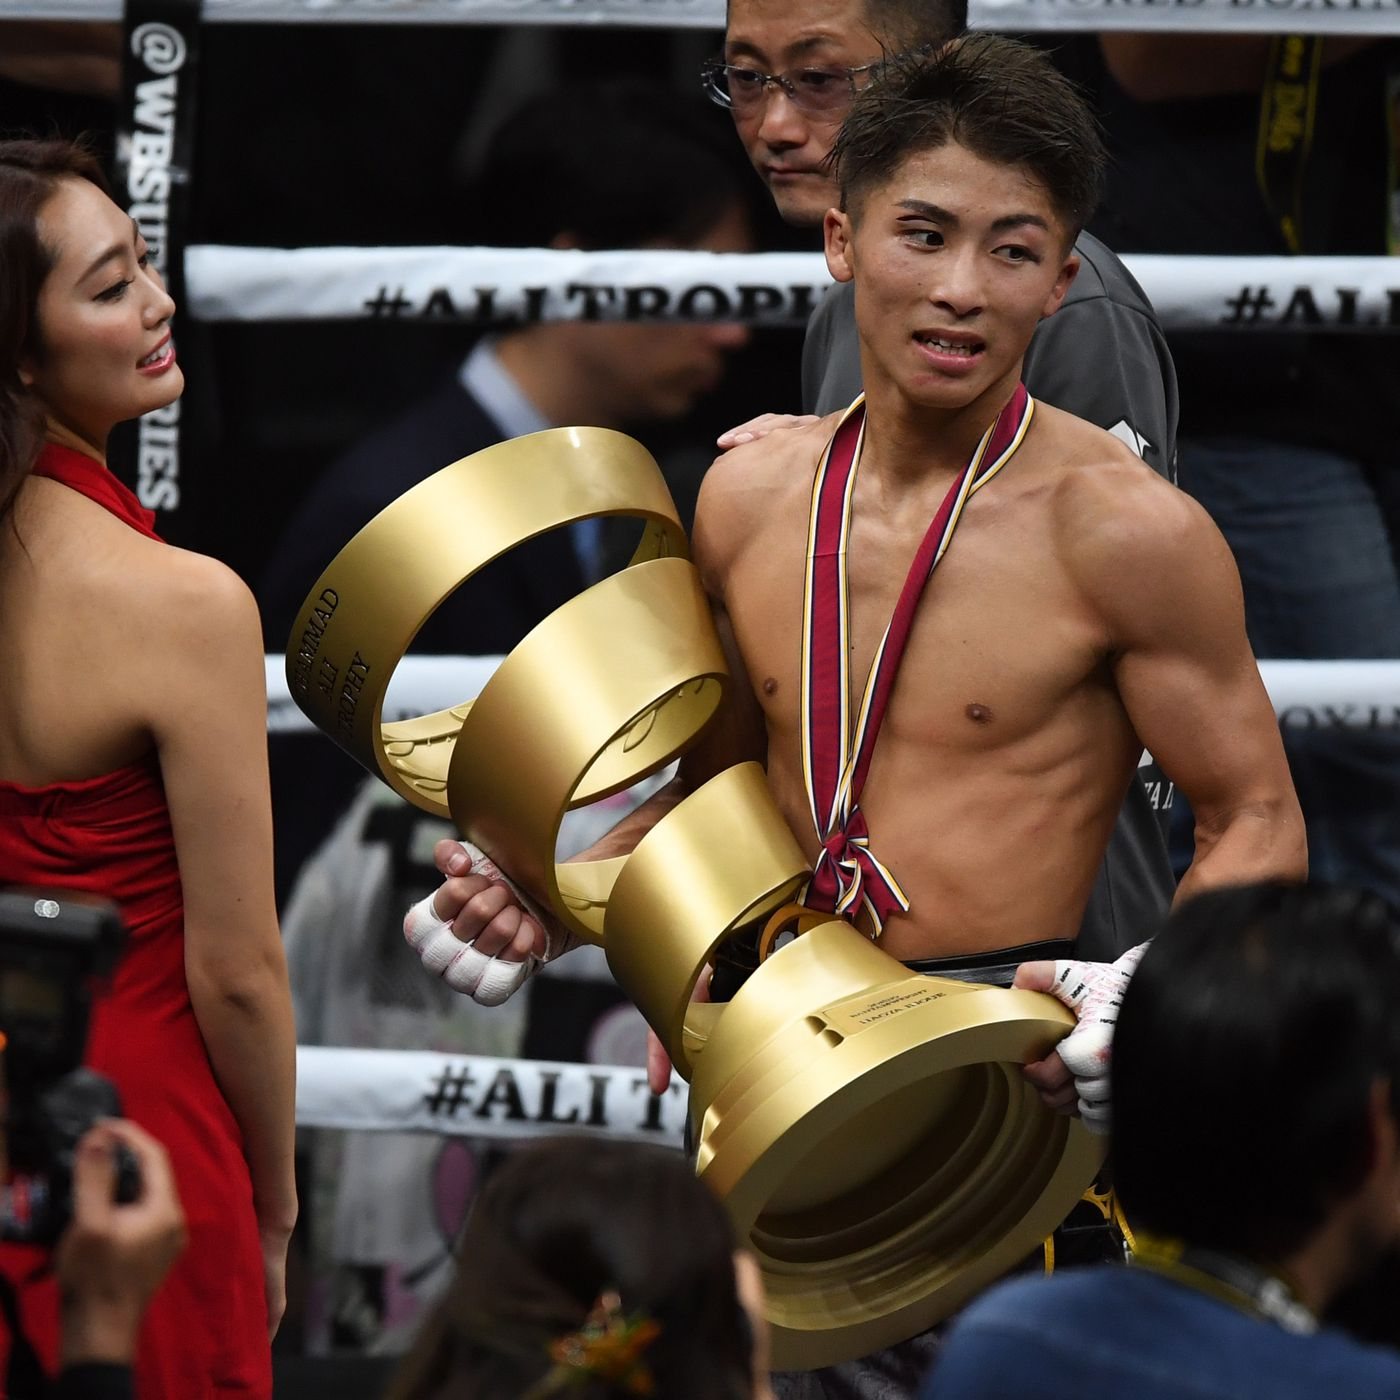 Naoya Inoue next fight: Bout with Jason Moloney set for Oct. 31, 2020 - Bad  Left Hook